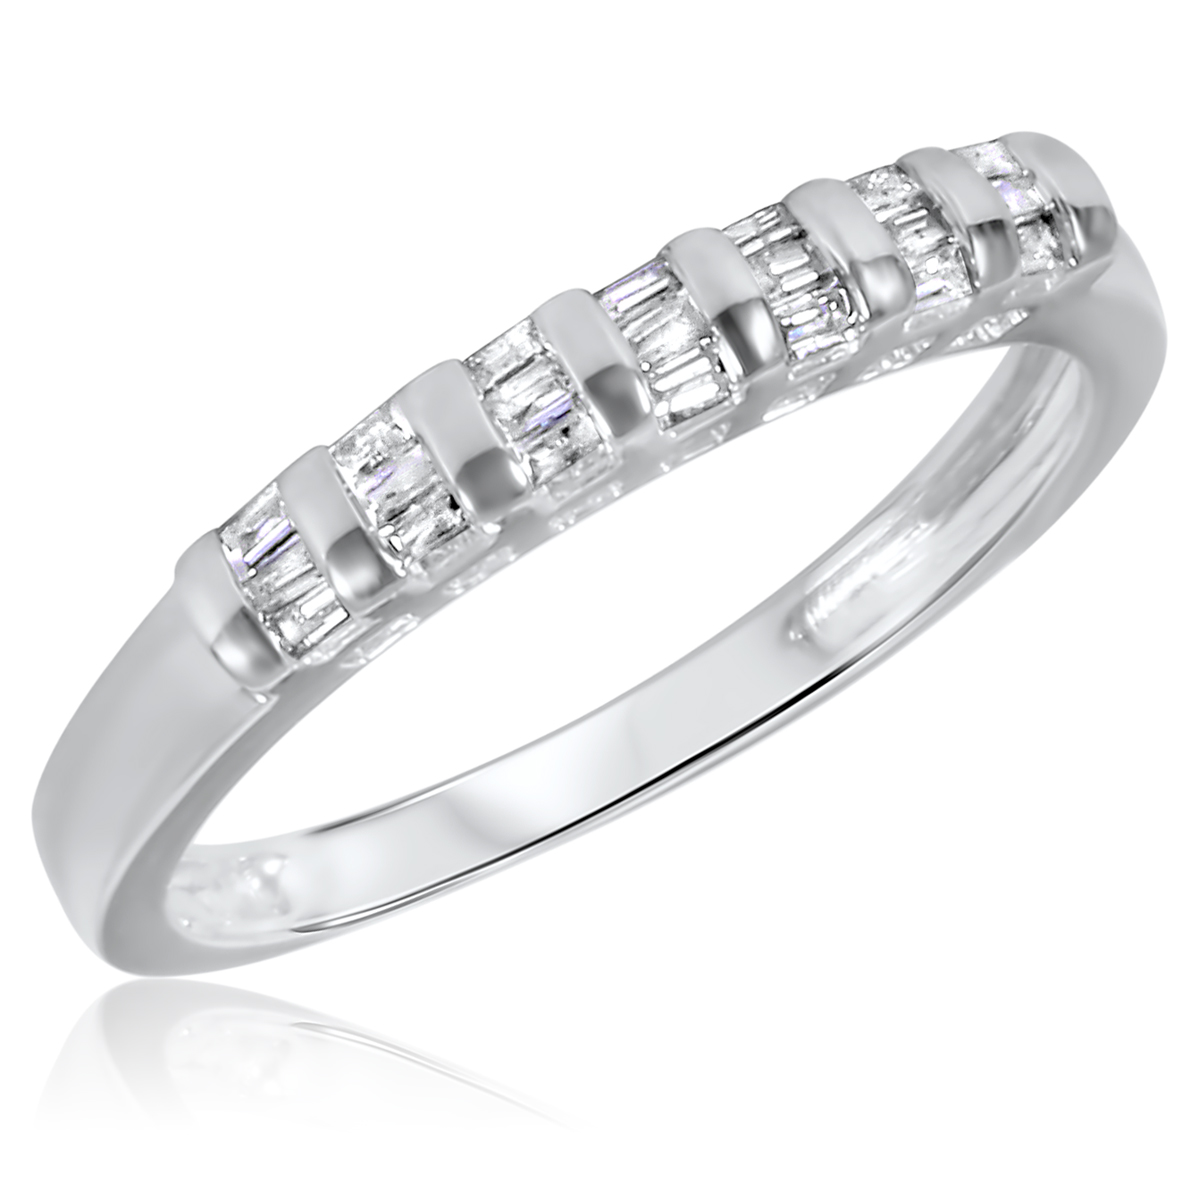 1 2 ct t w his and hers wedding rings 14k white